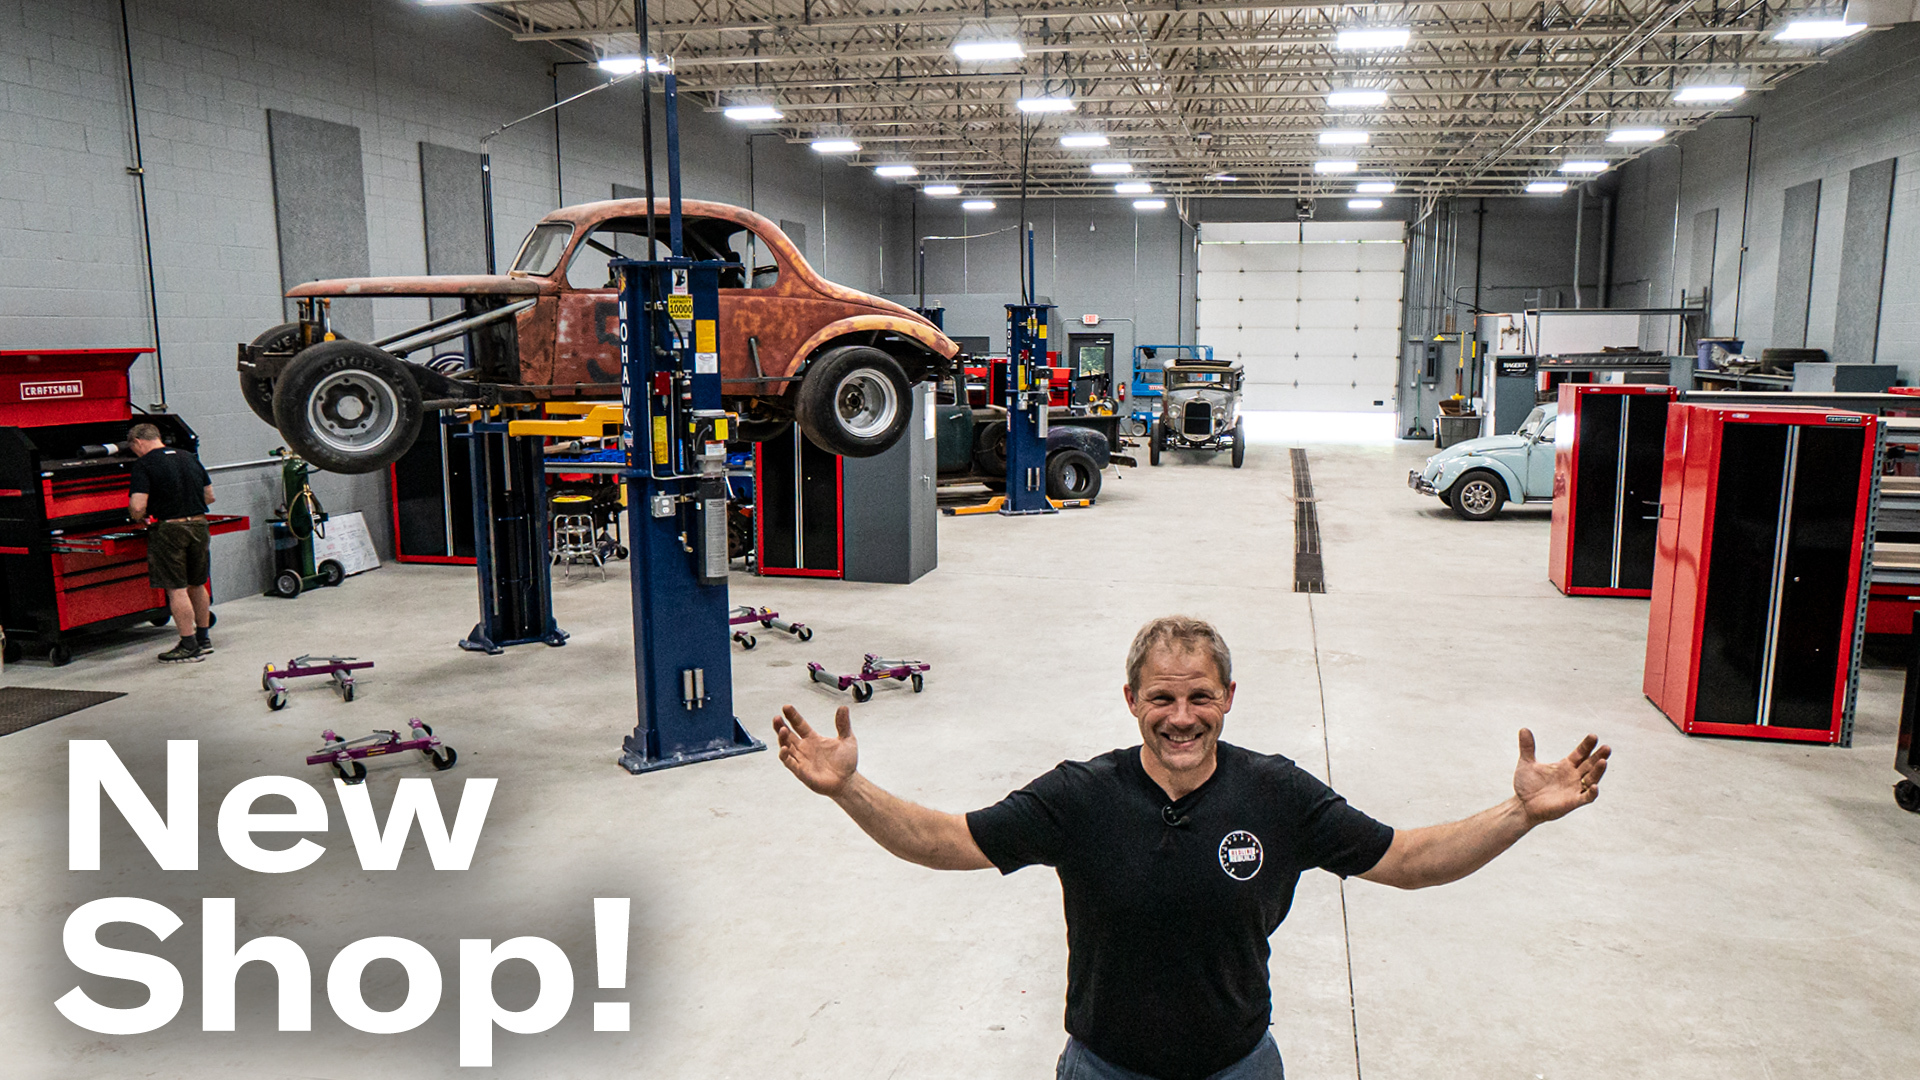 Hagerty's new garage space